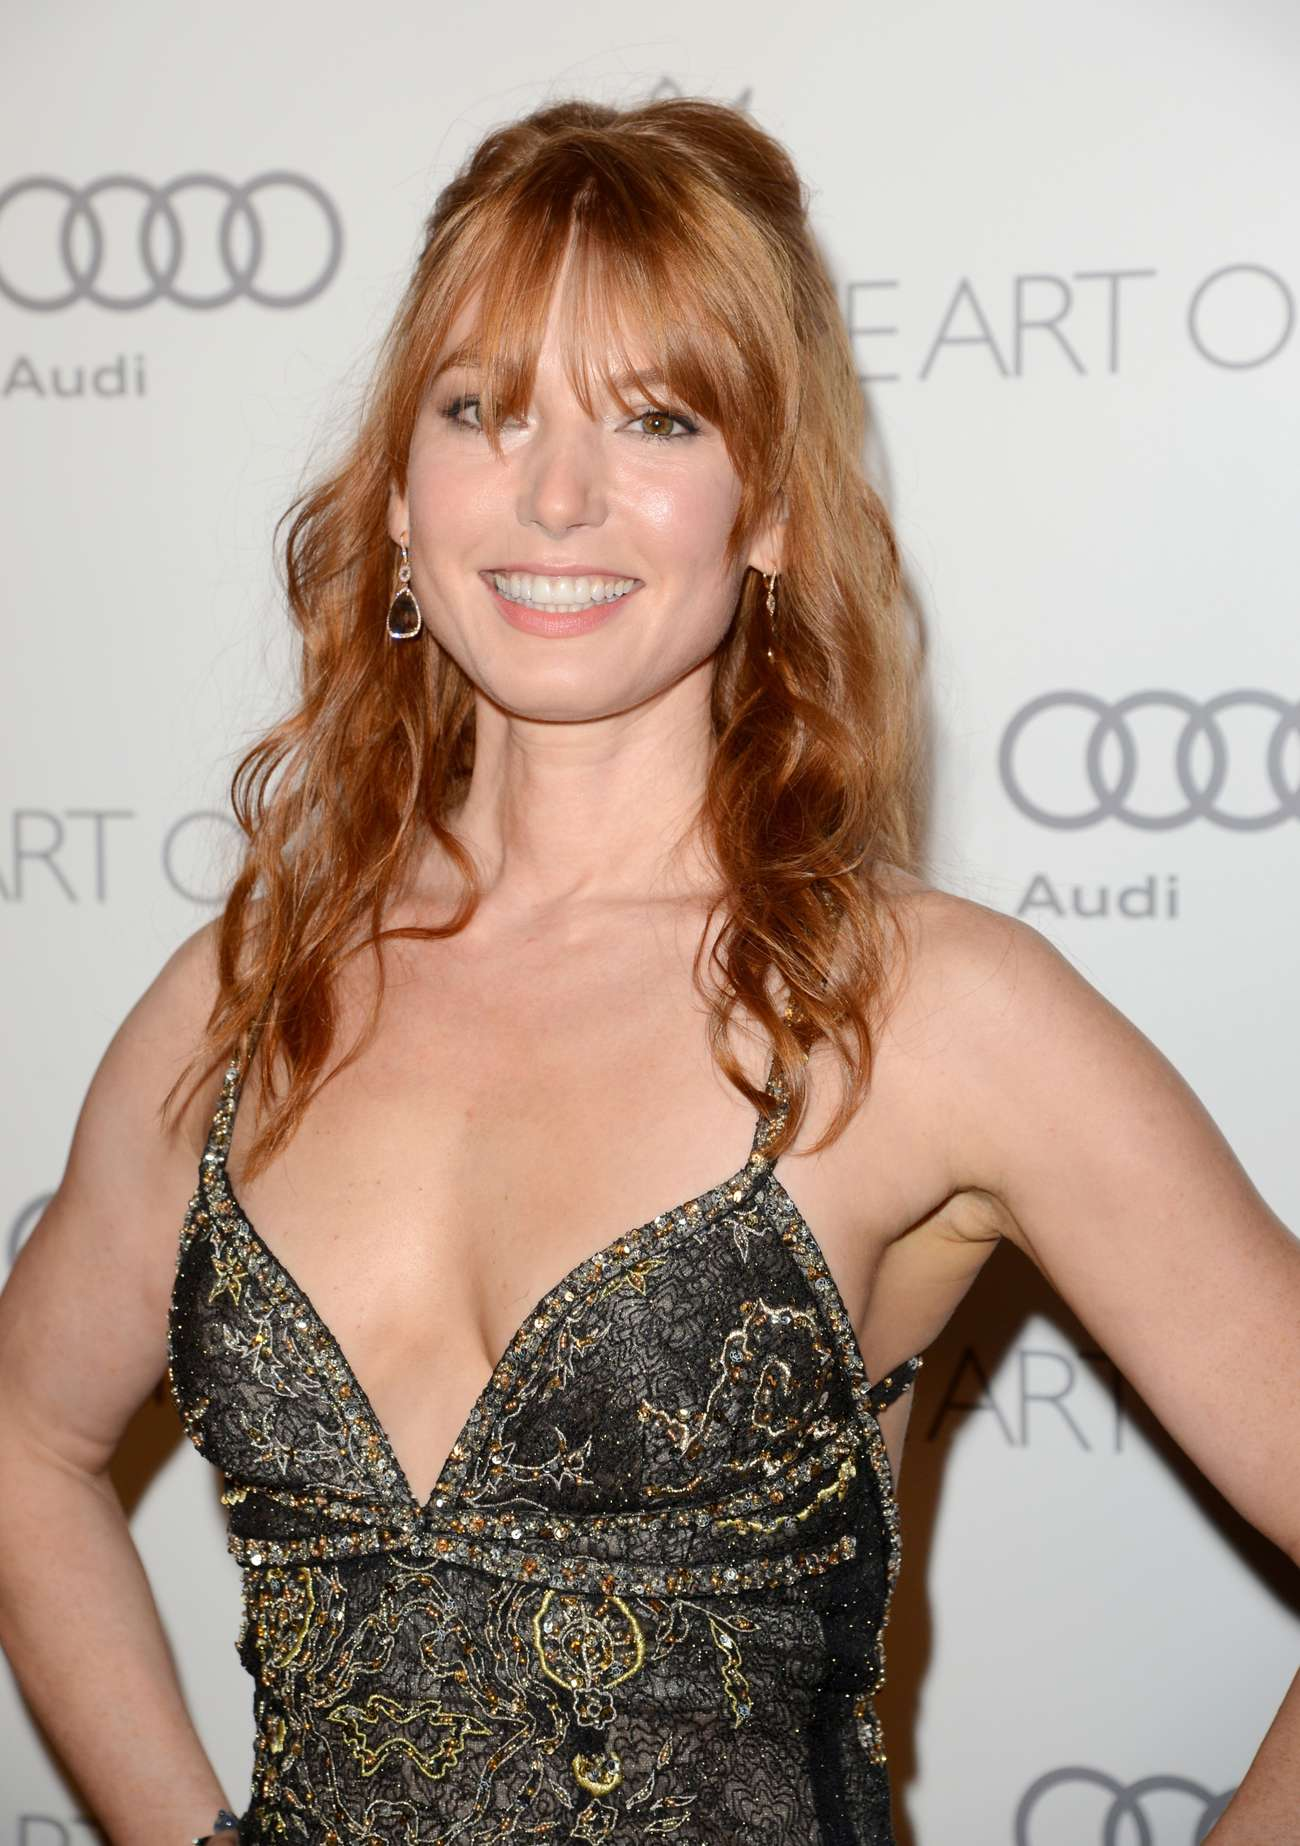 Alicia Witt naked (48 photo) Cleavage, Snapchat, butt